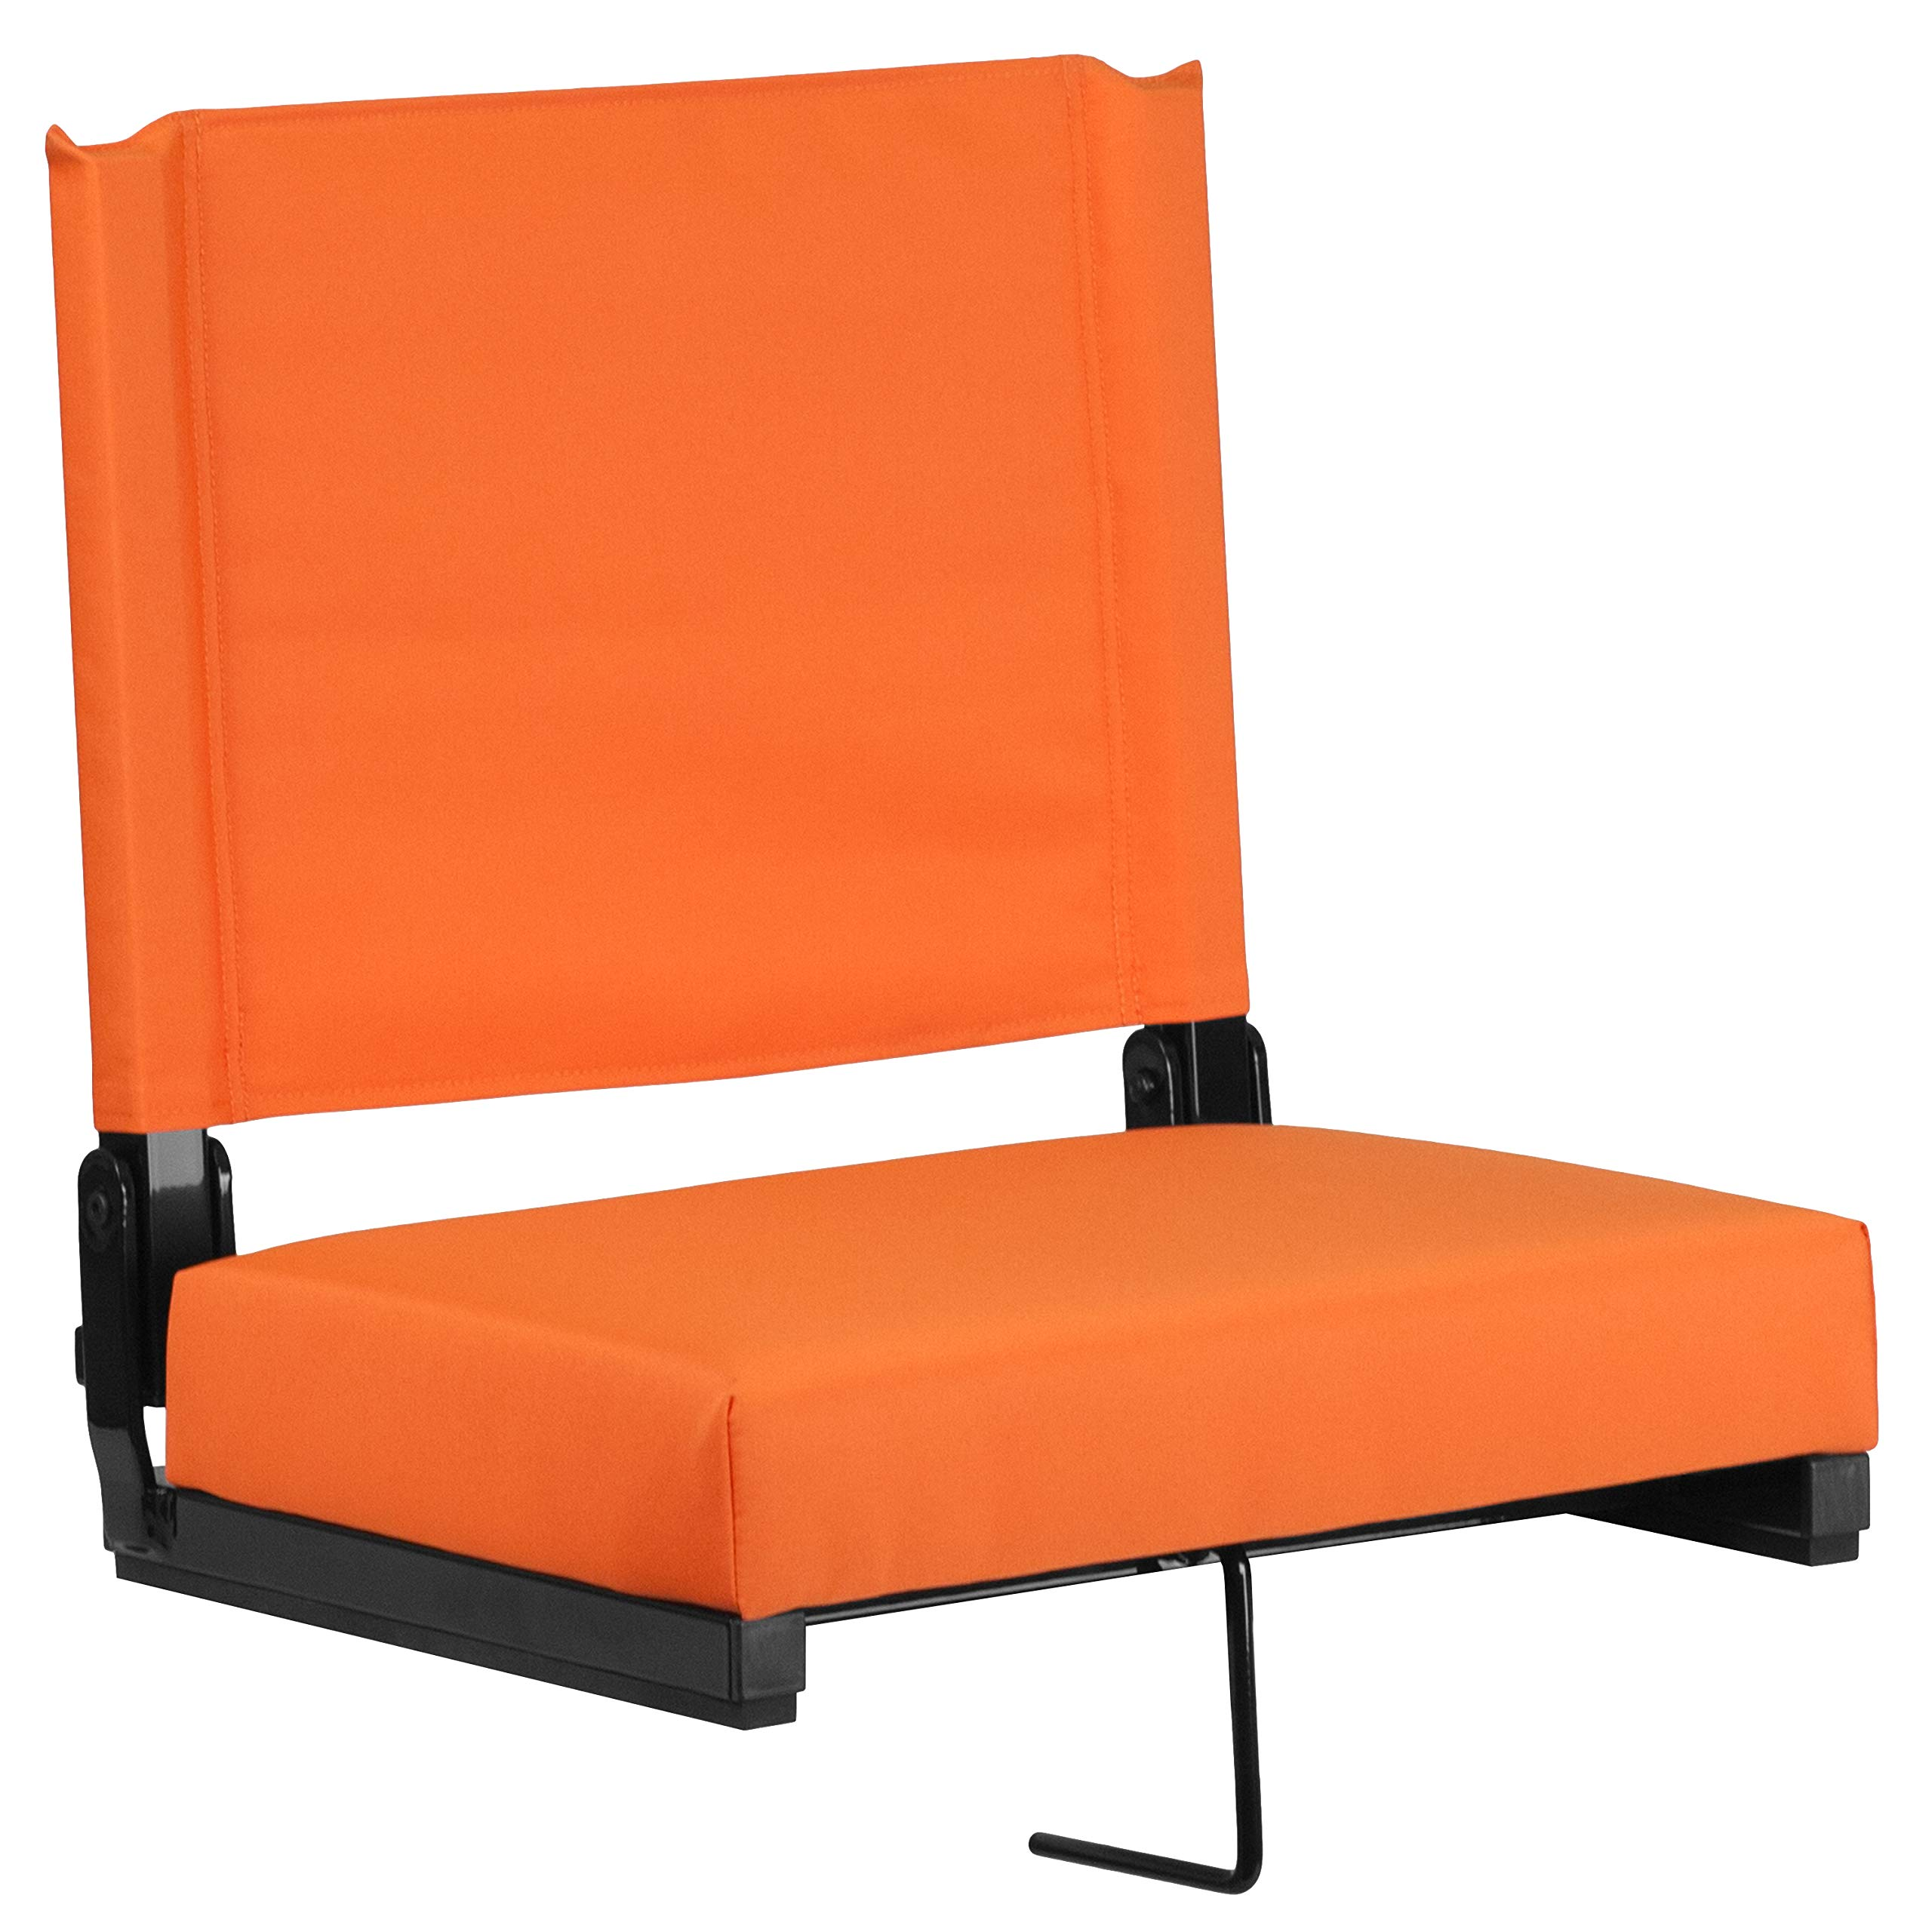 Flash Furniture Grandstand Comfort Seats by Flash with Ultra-Padded Seat in Orange by Flash Furniture